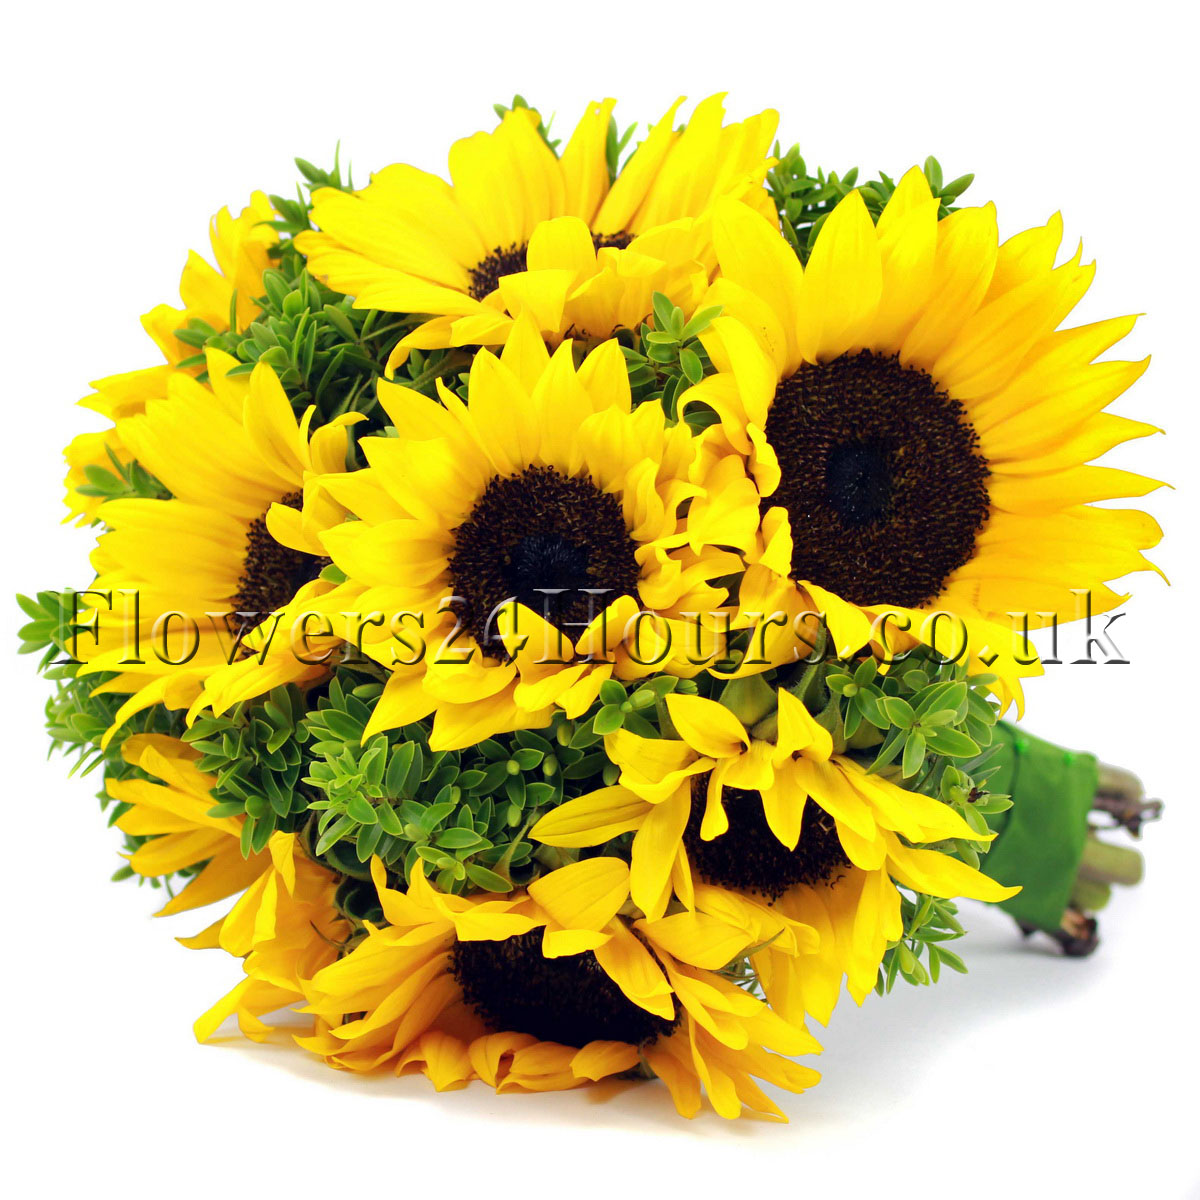 Sunflower birthday quotes quotesgram